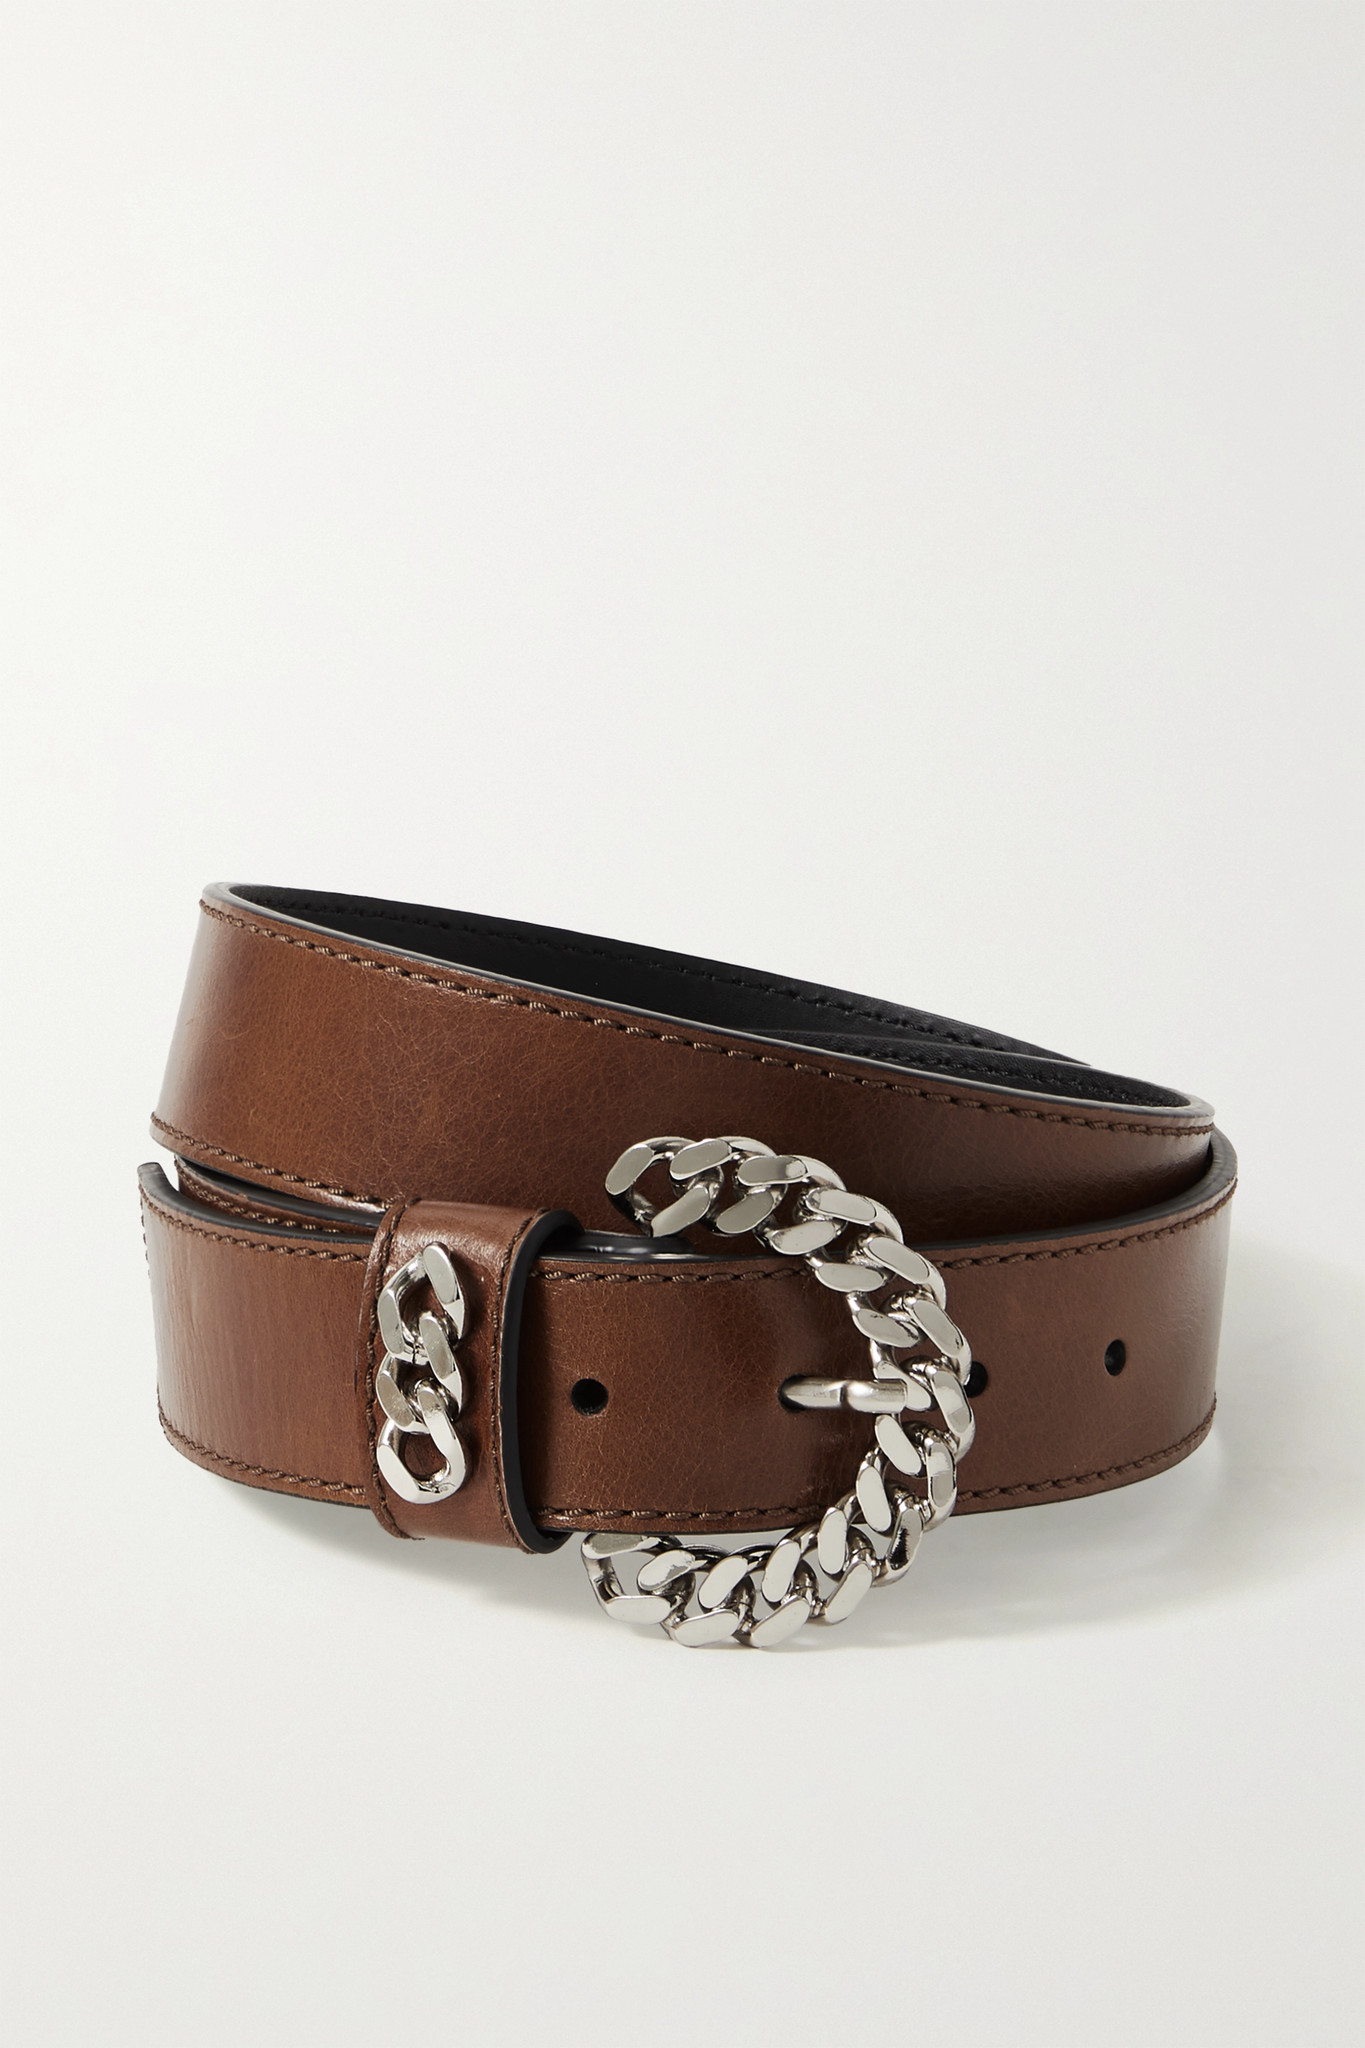 KATE CATE - + Net Sustain Embellished Leather Belt - Brown - 75